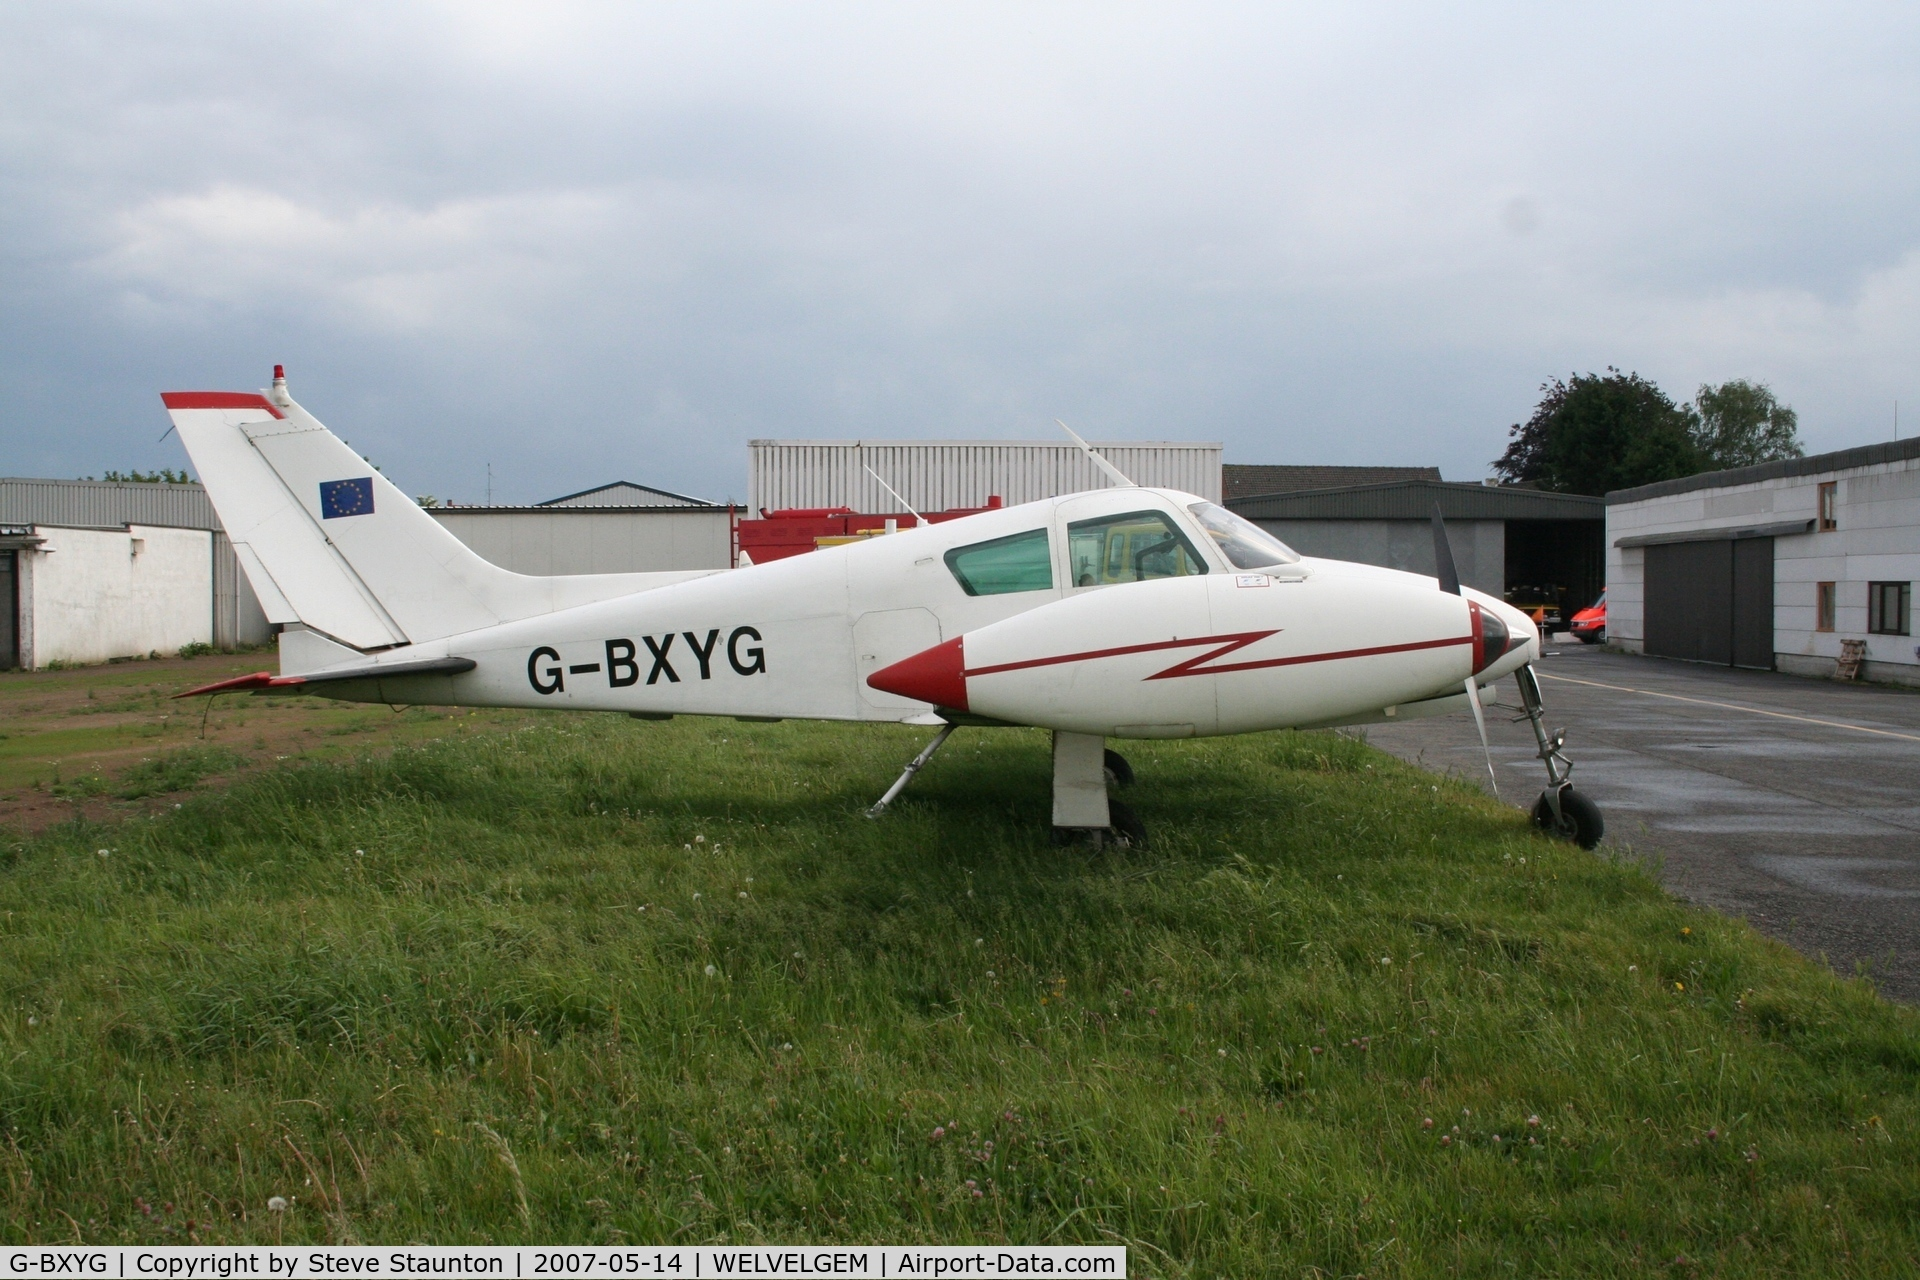 G-BXYG, 1960 Cessna 310D C/N 39089, Taken on a recent Aeroprint tour @ Wevelgem